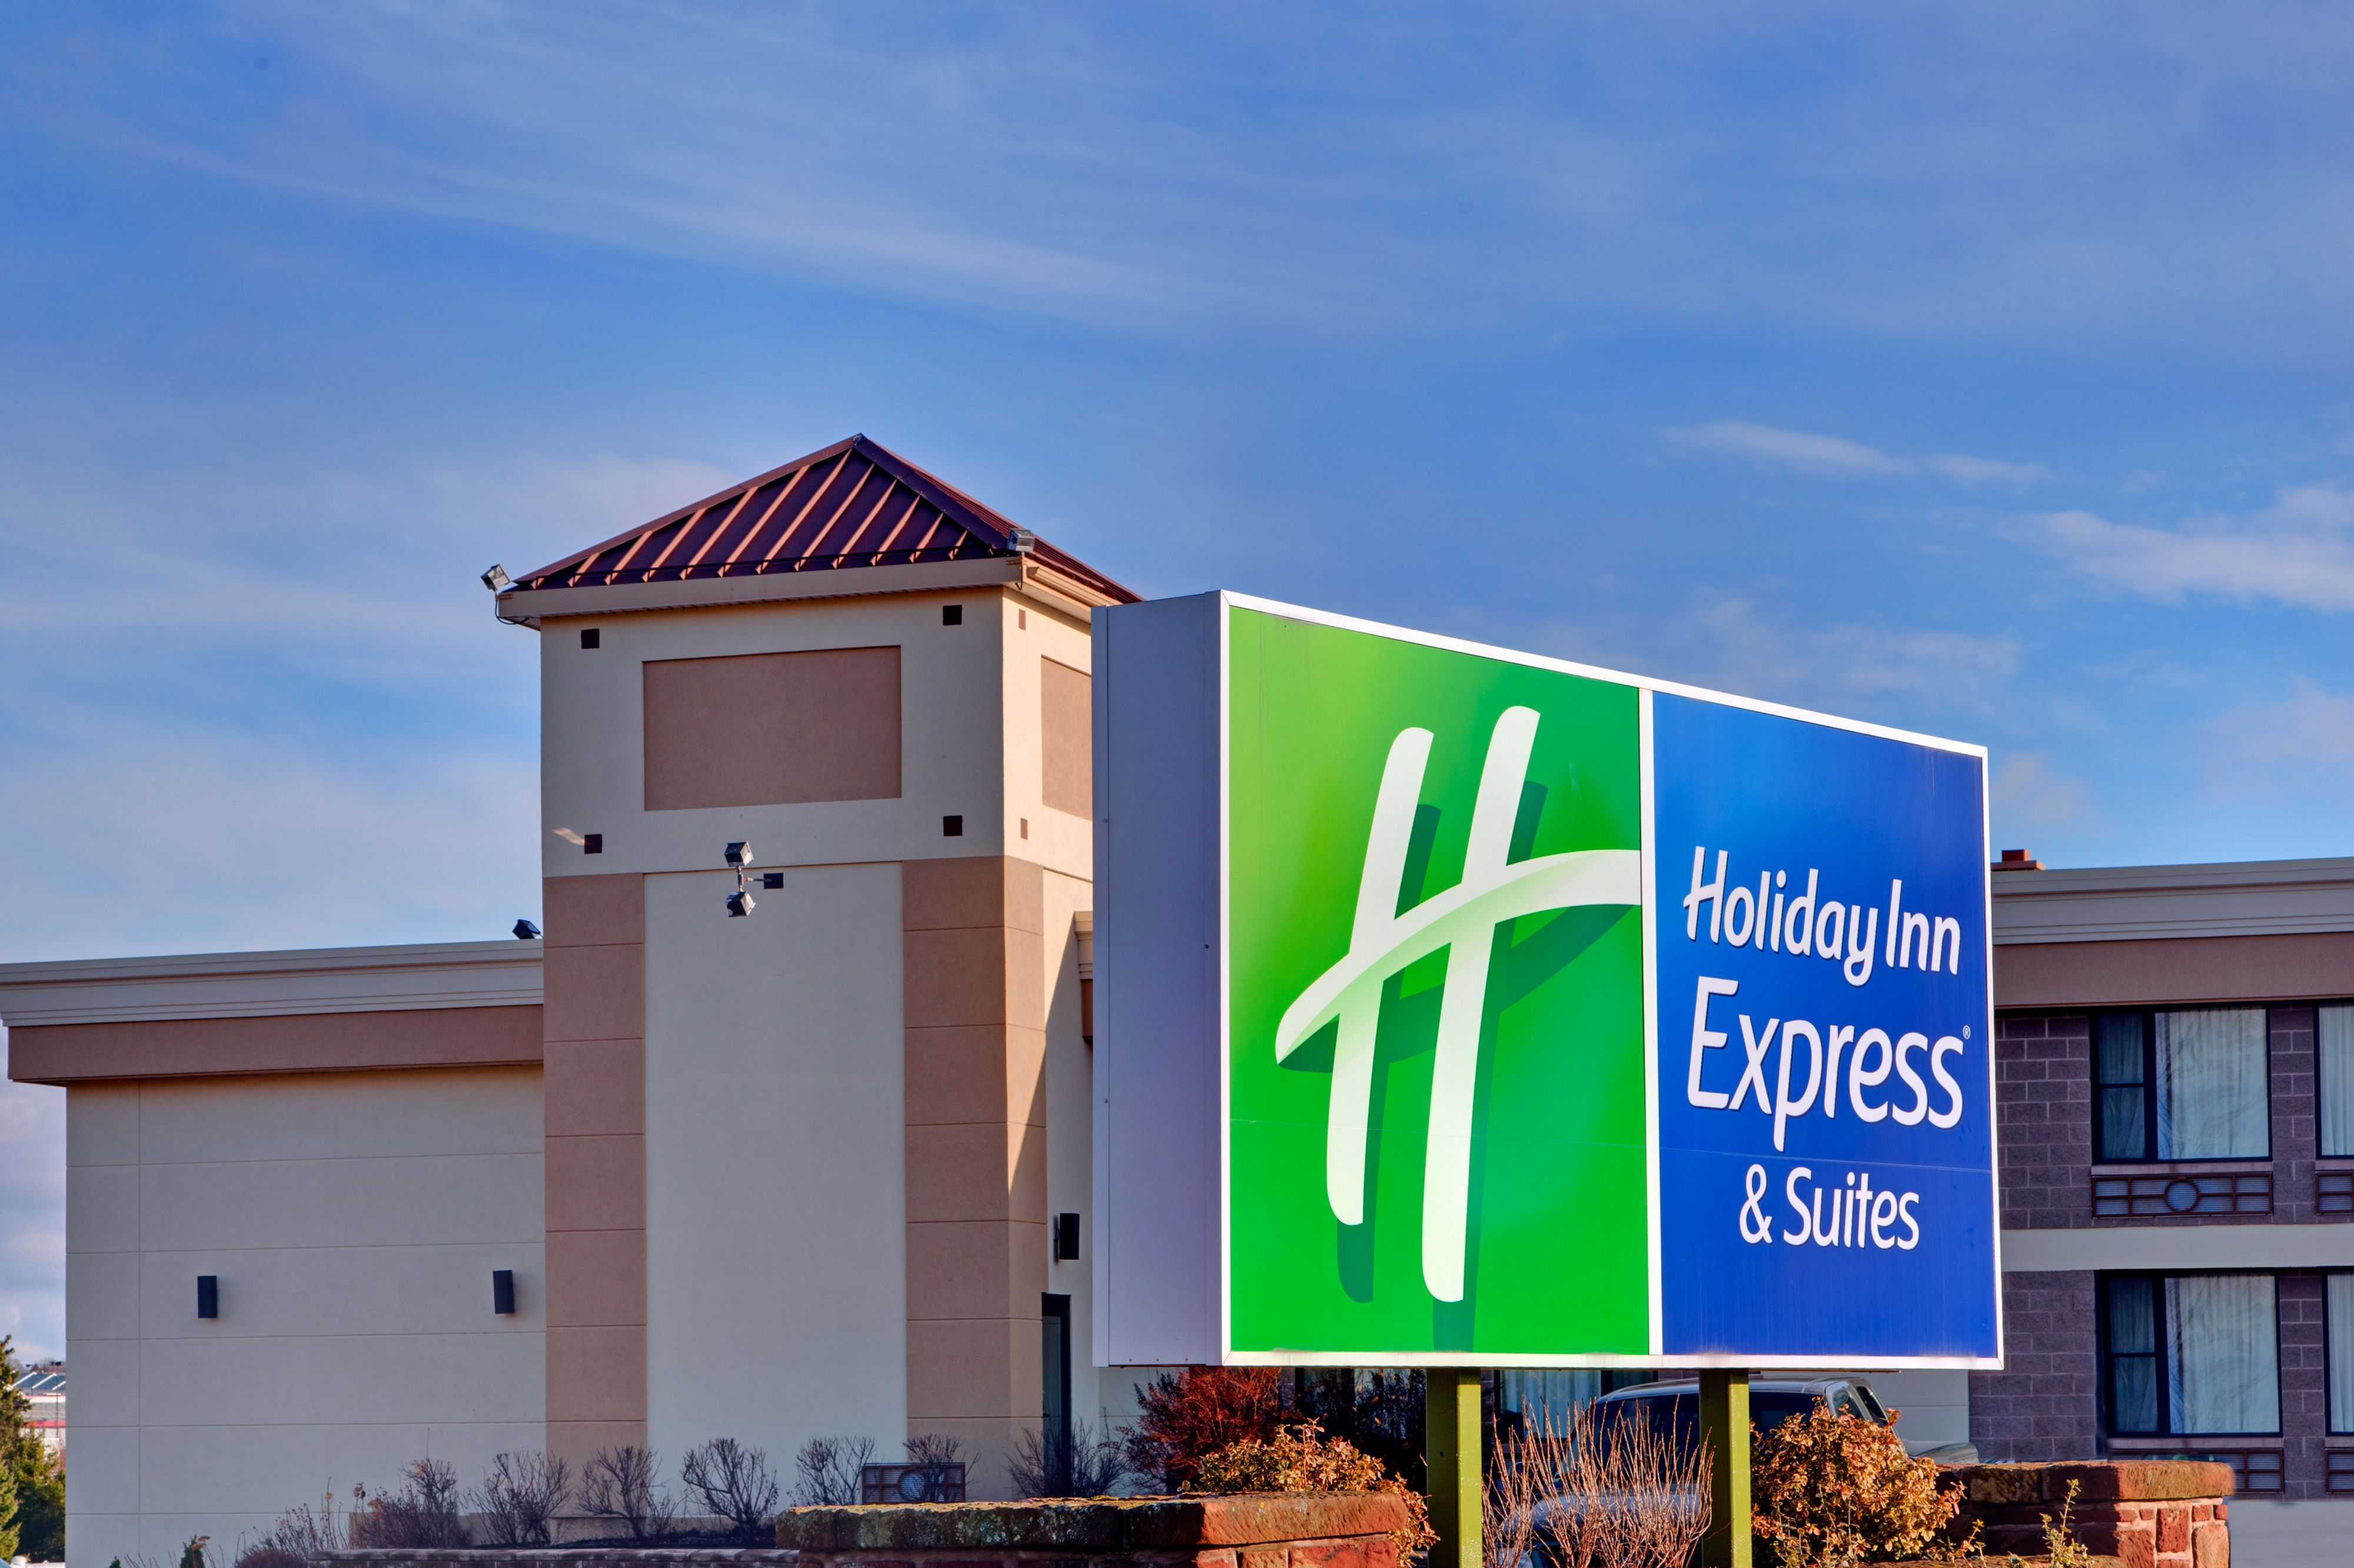 Holiday Inn Express & Suites Charlotte-Concord-I-85 image 5